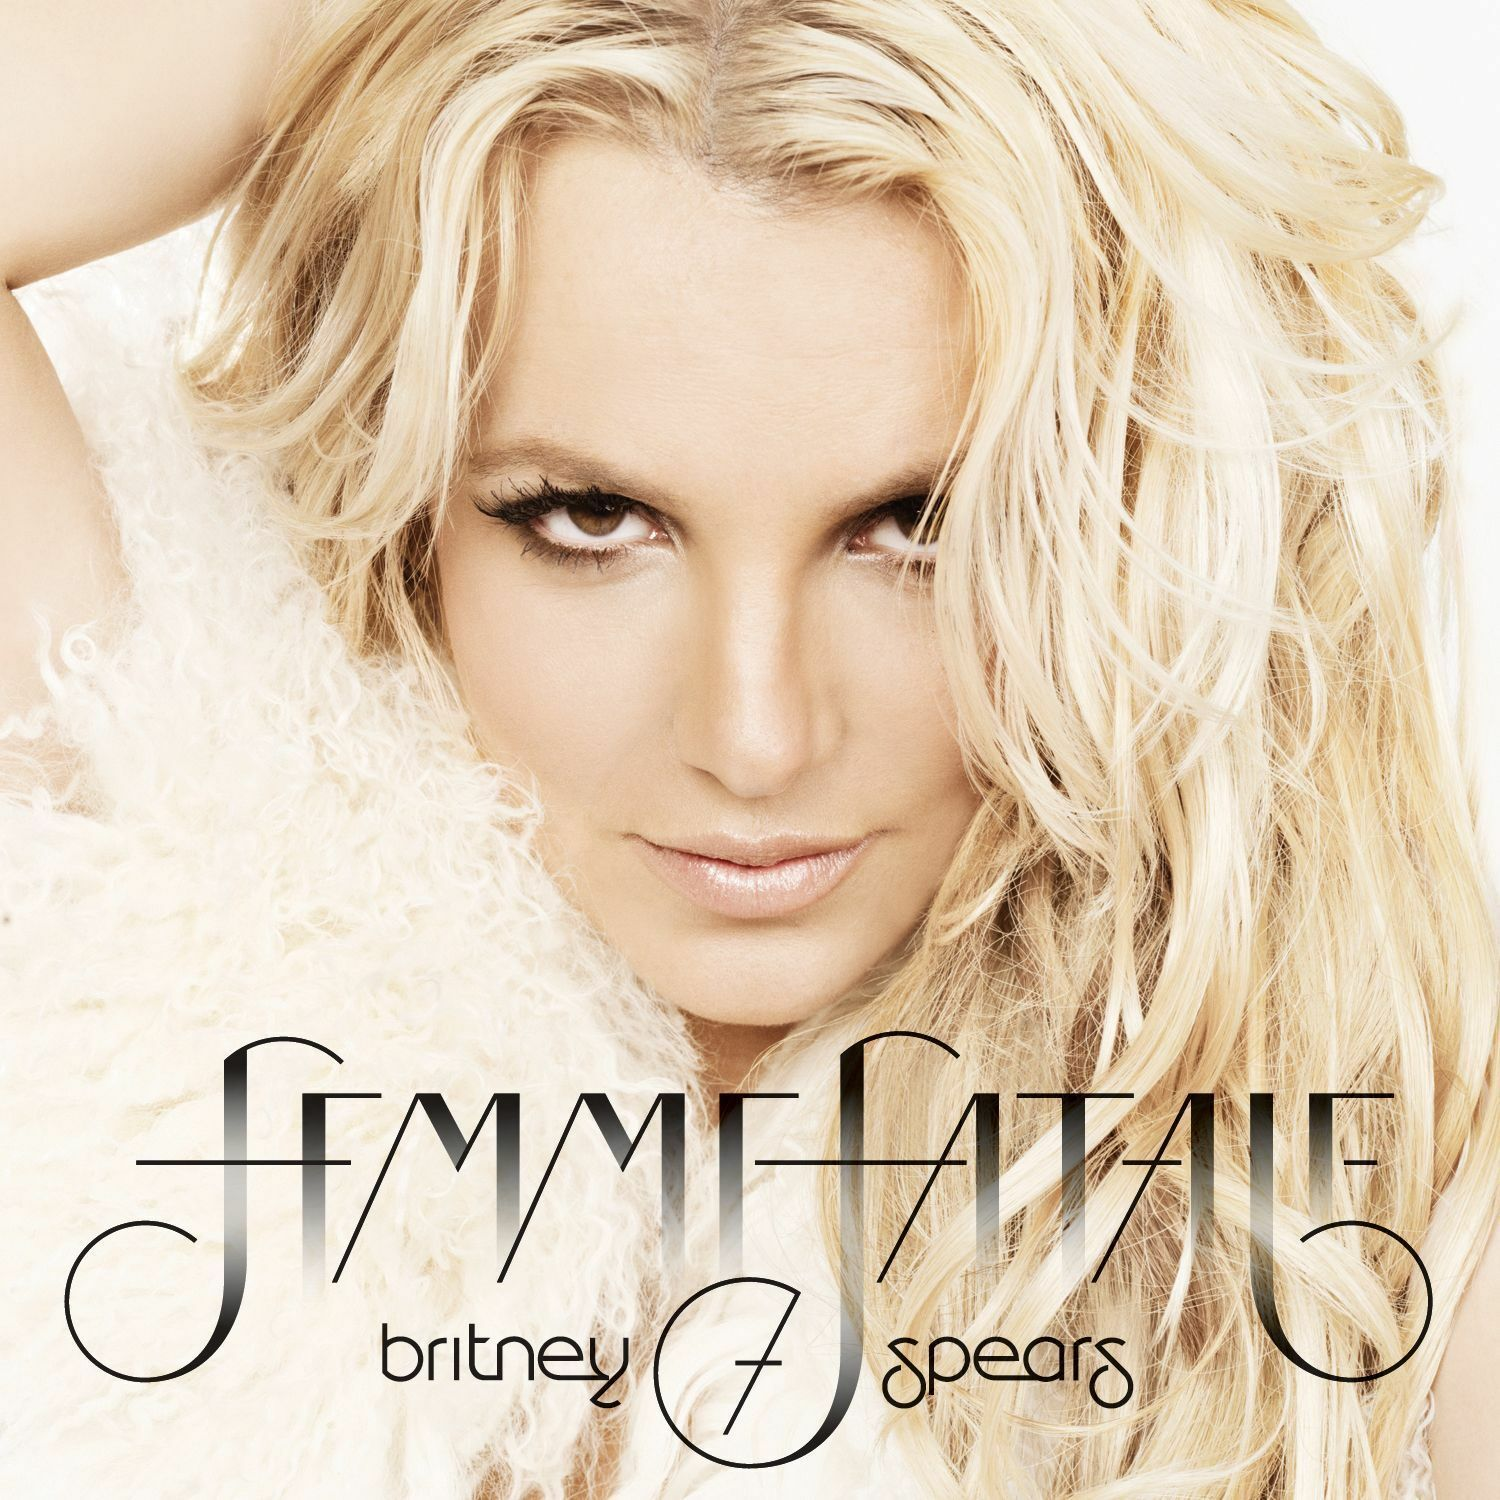 Primary image for BRITNEY SPEARS (femme fatale) POSTER 24 X 24 Inches Looks great